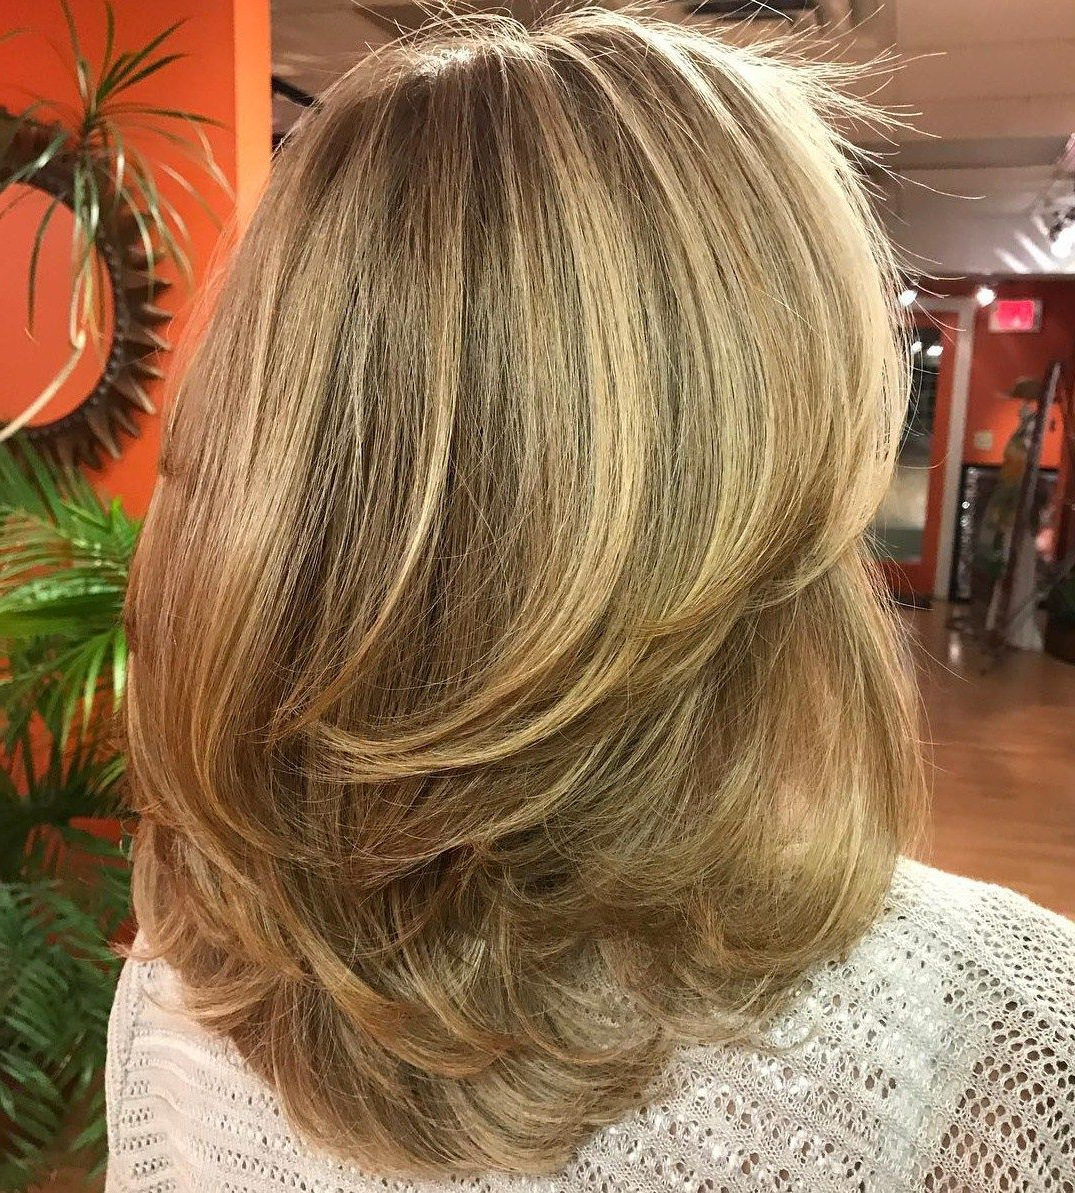 Most Recent Mid Back Brown U Shaped Haircuts With Swoopy Layers In Swoopy Layers For Mid Length Hair (View 13 of 20)